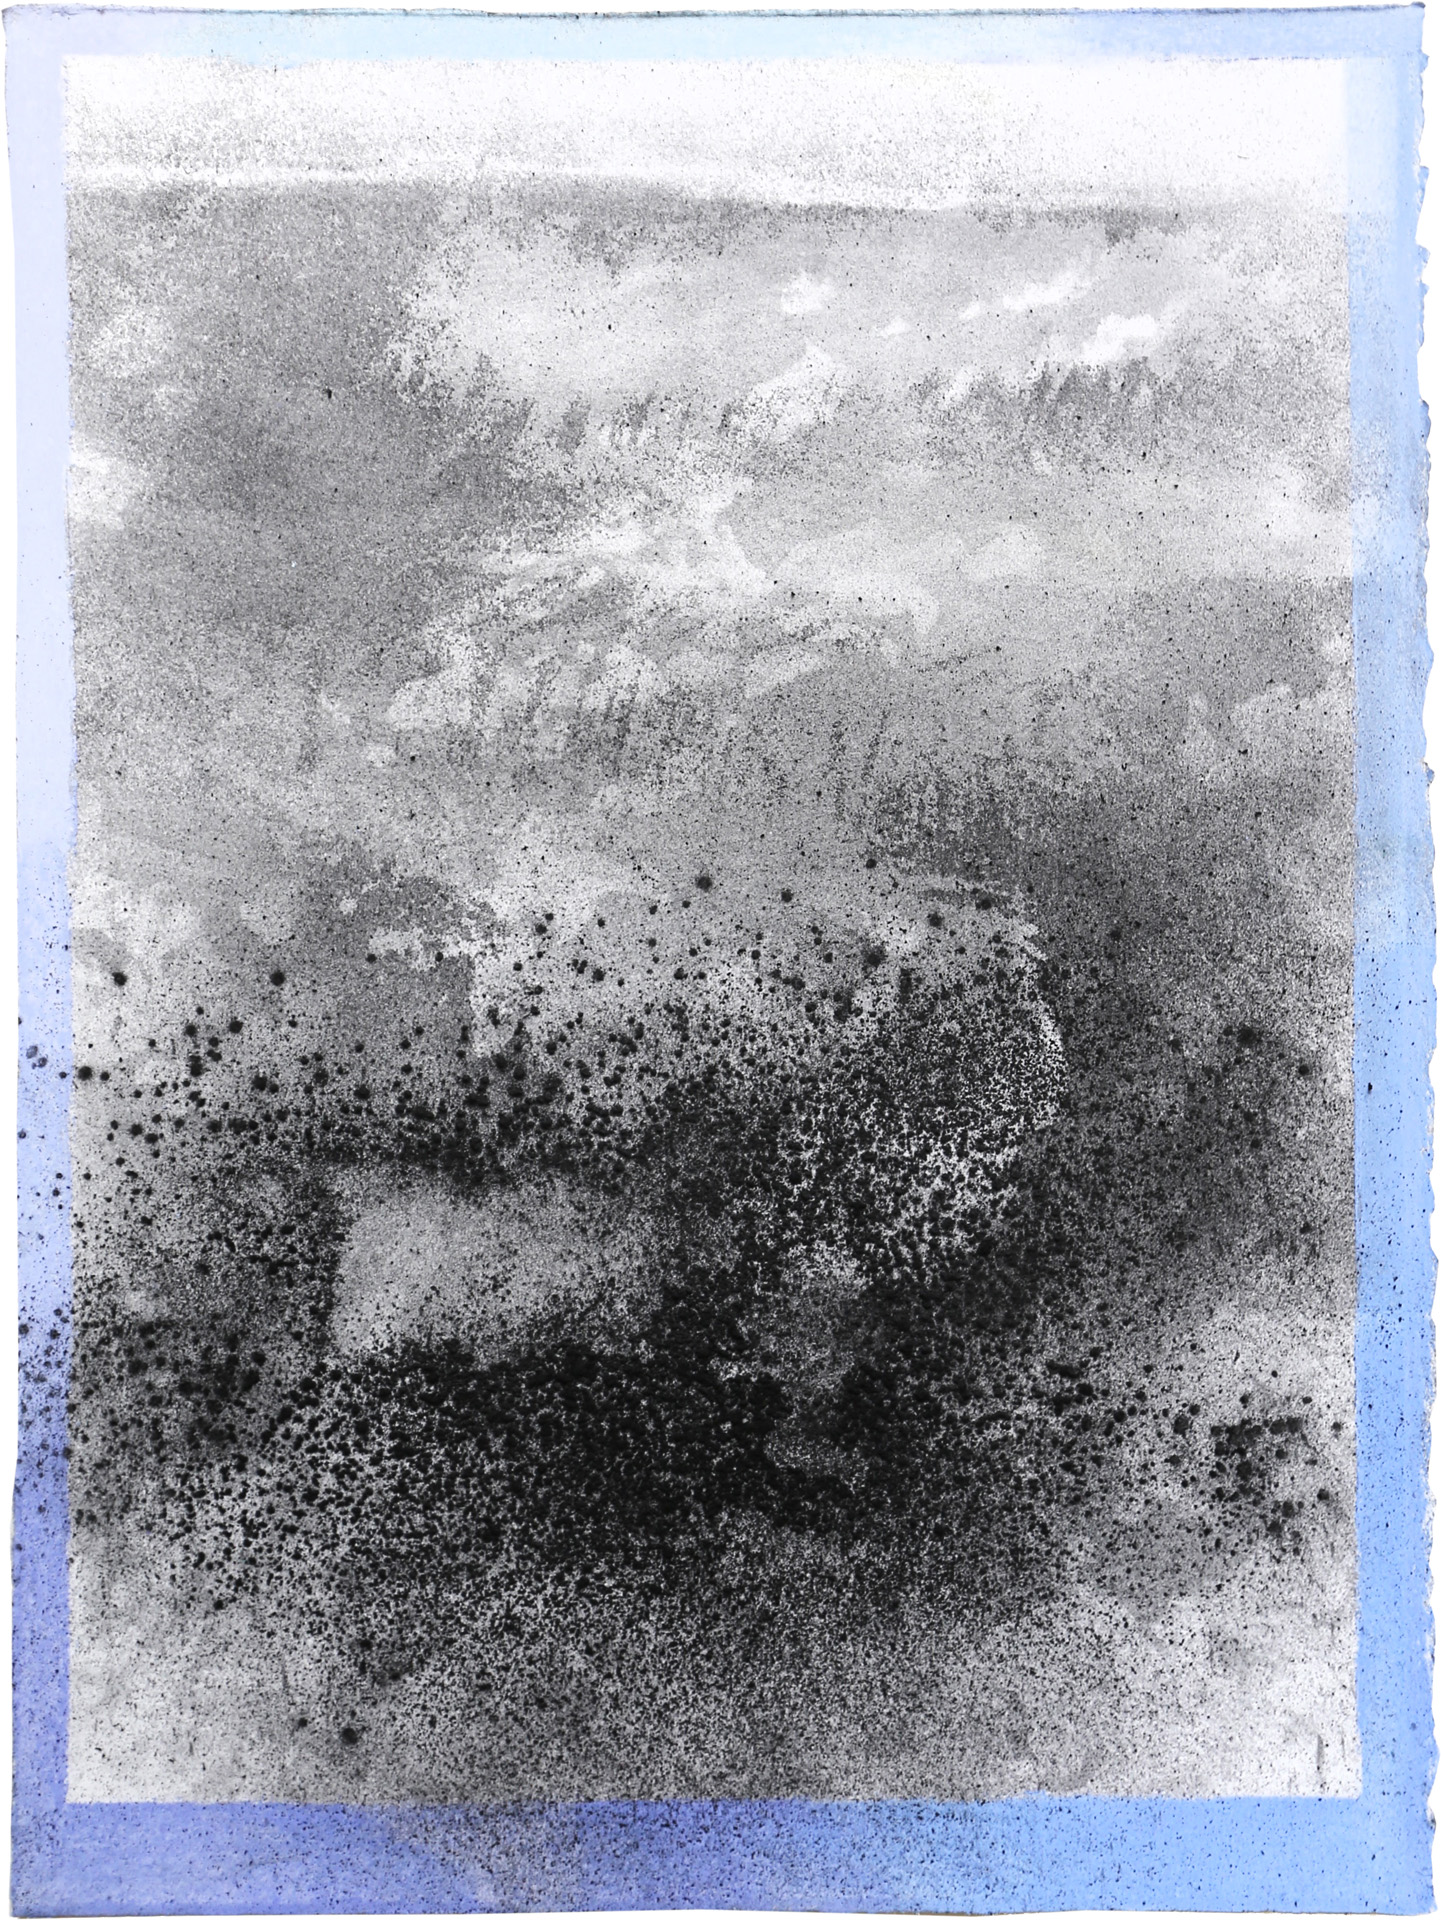 Nora Mona Bach – Tension II, 2020, pastel, charcoal on paper, 39 cm x 29 cm